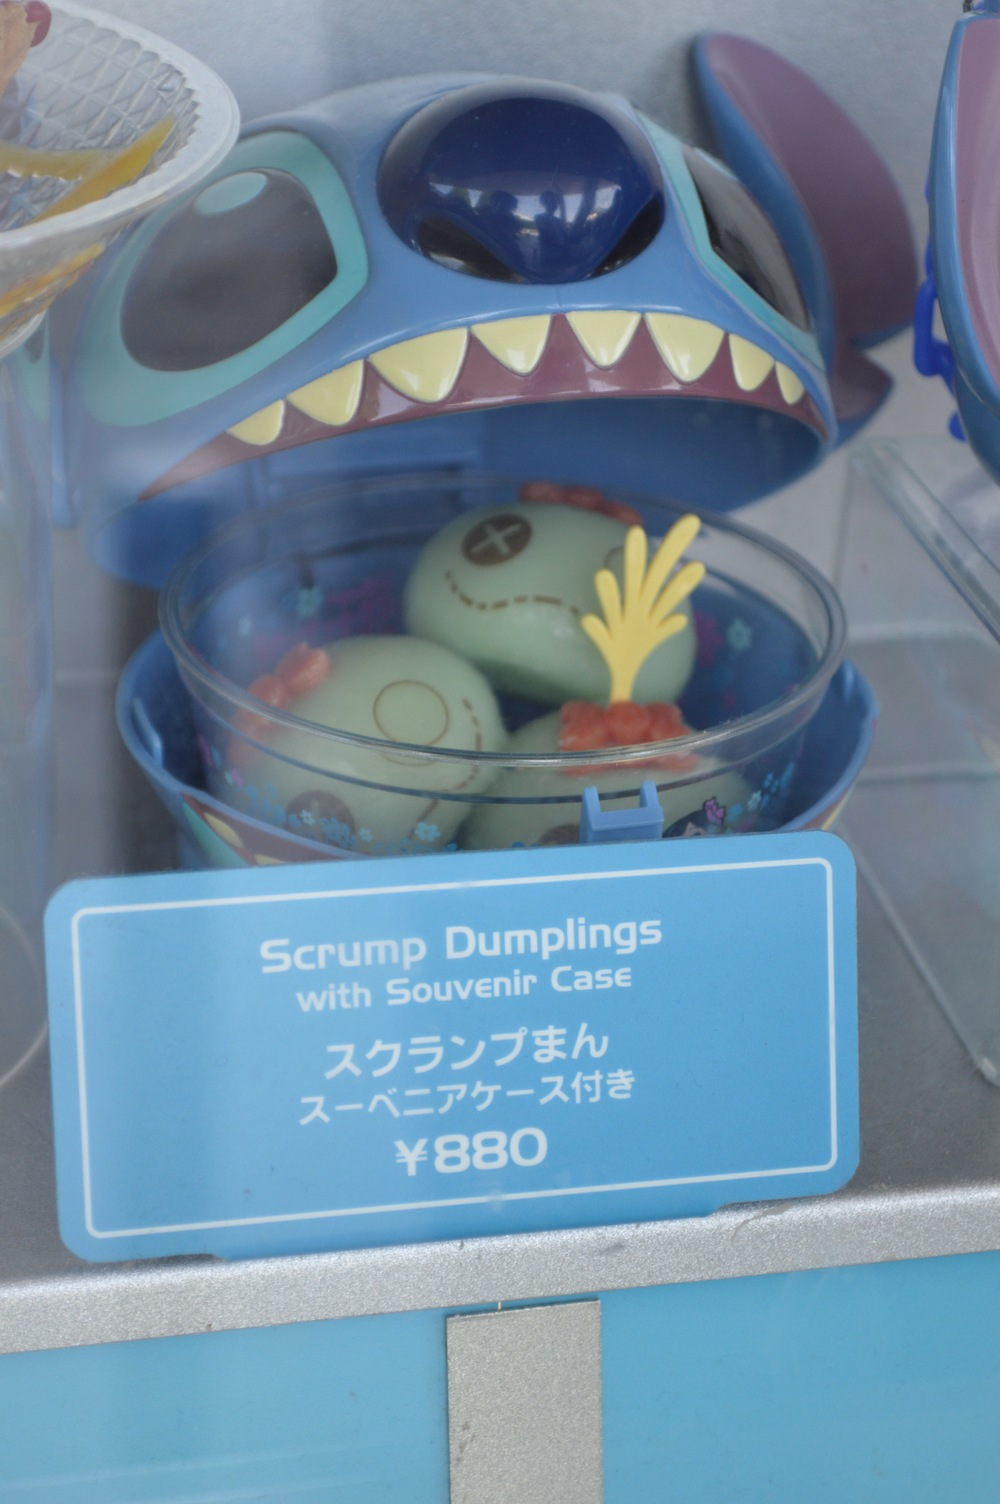 Scrump Dumplings in Stitch Case